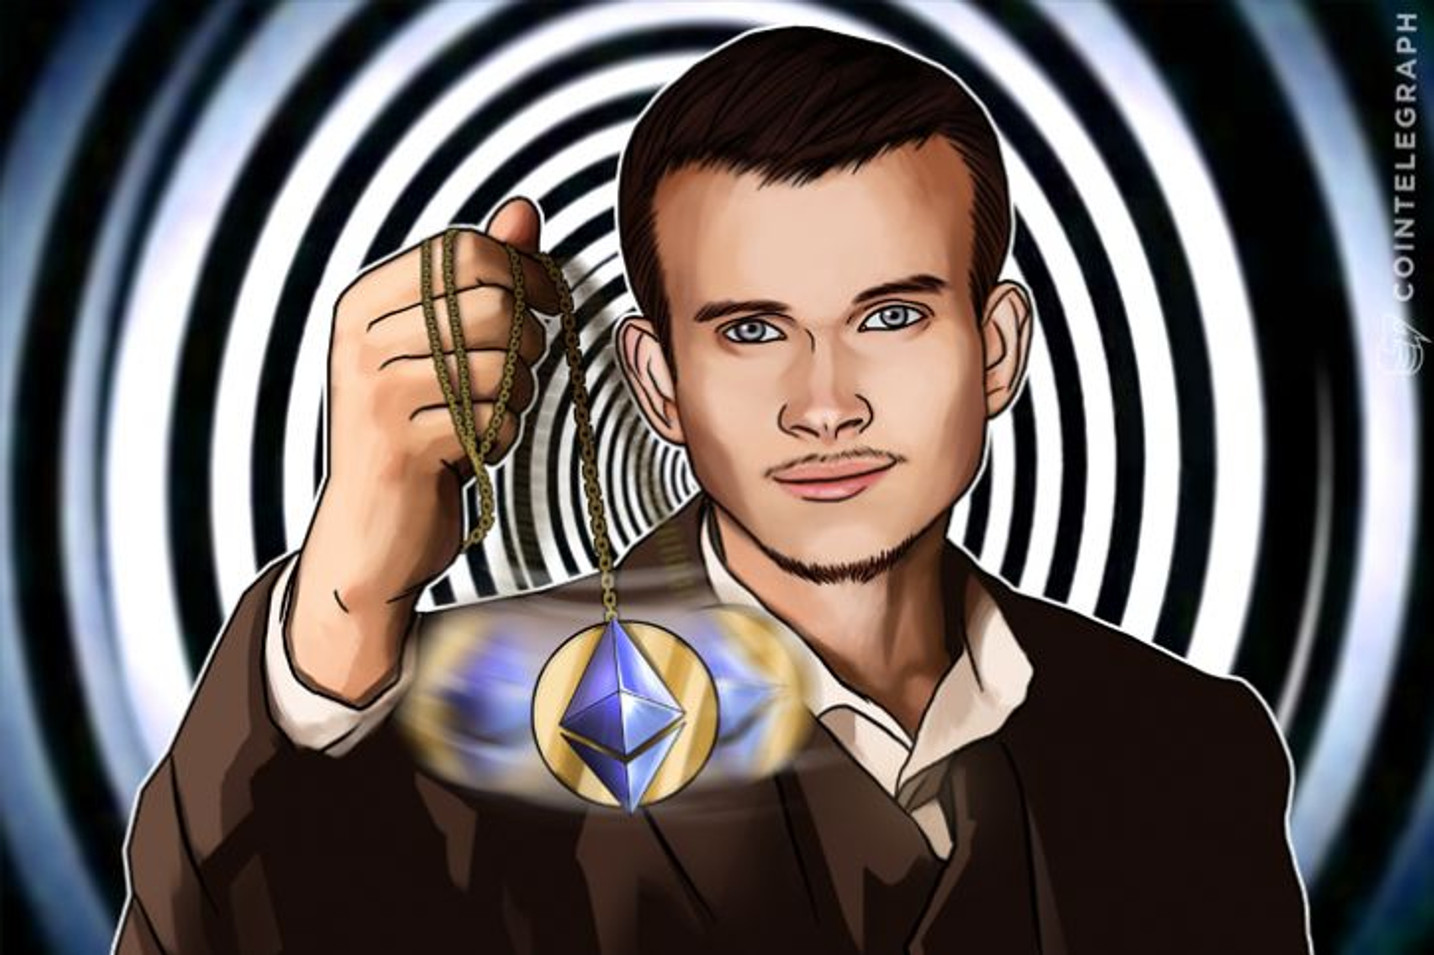 Proof-of-Vitalik: Ethereum's Buterin Immutably Counters Death Rumors